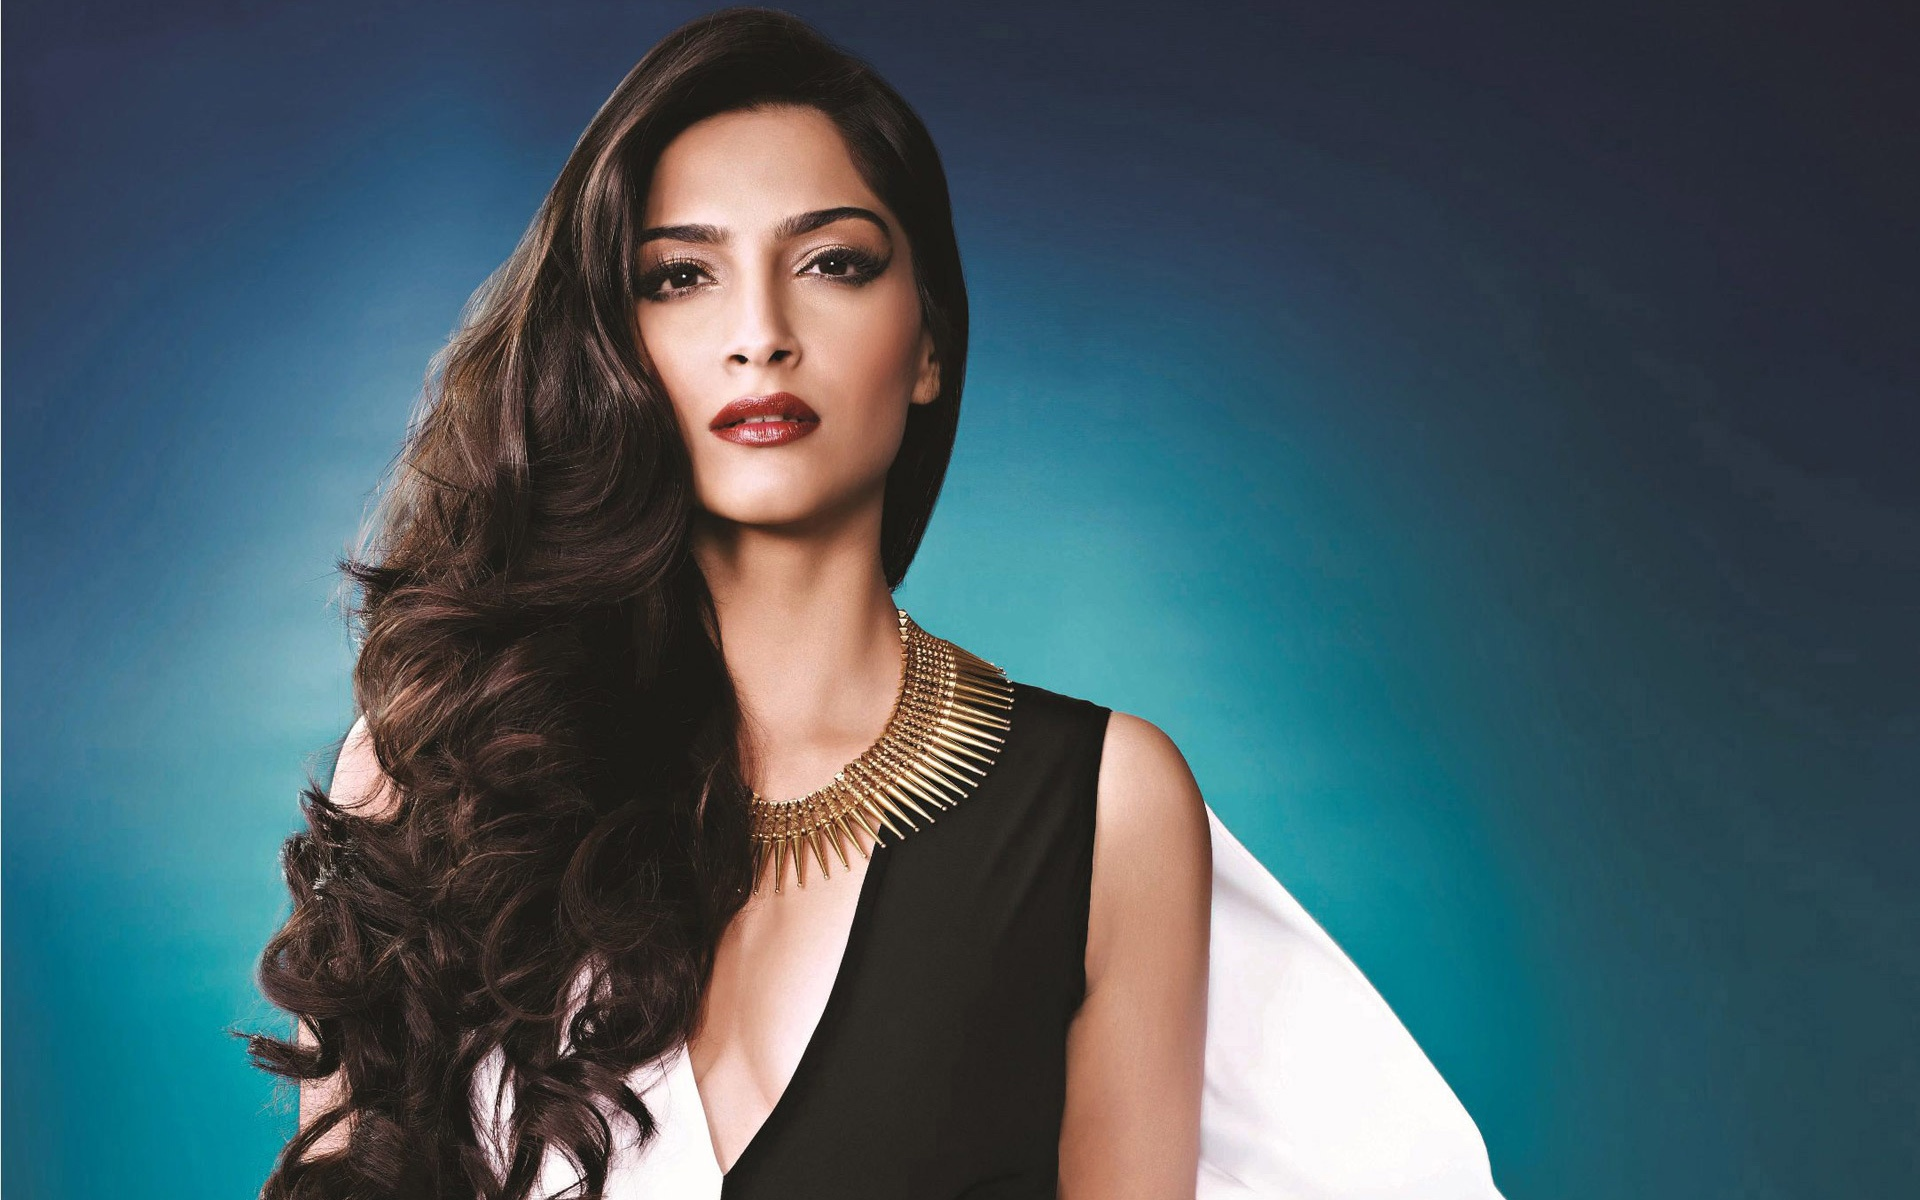 sonam kapoor full hd wallpaper and background image | 1920x1200 | id